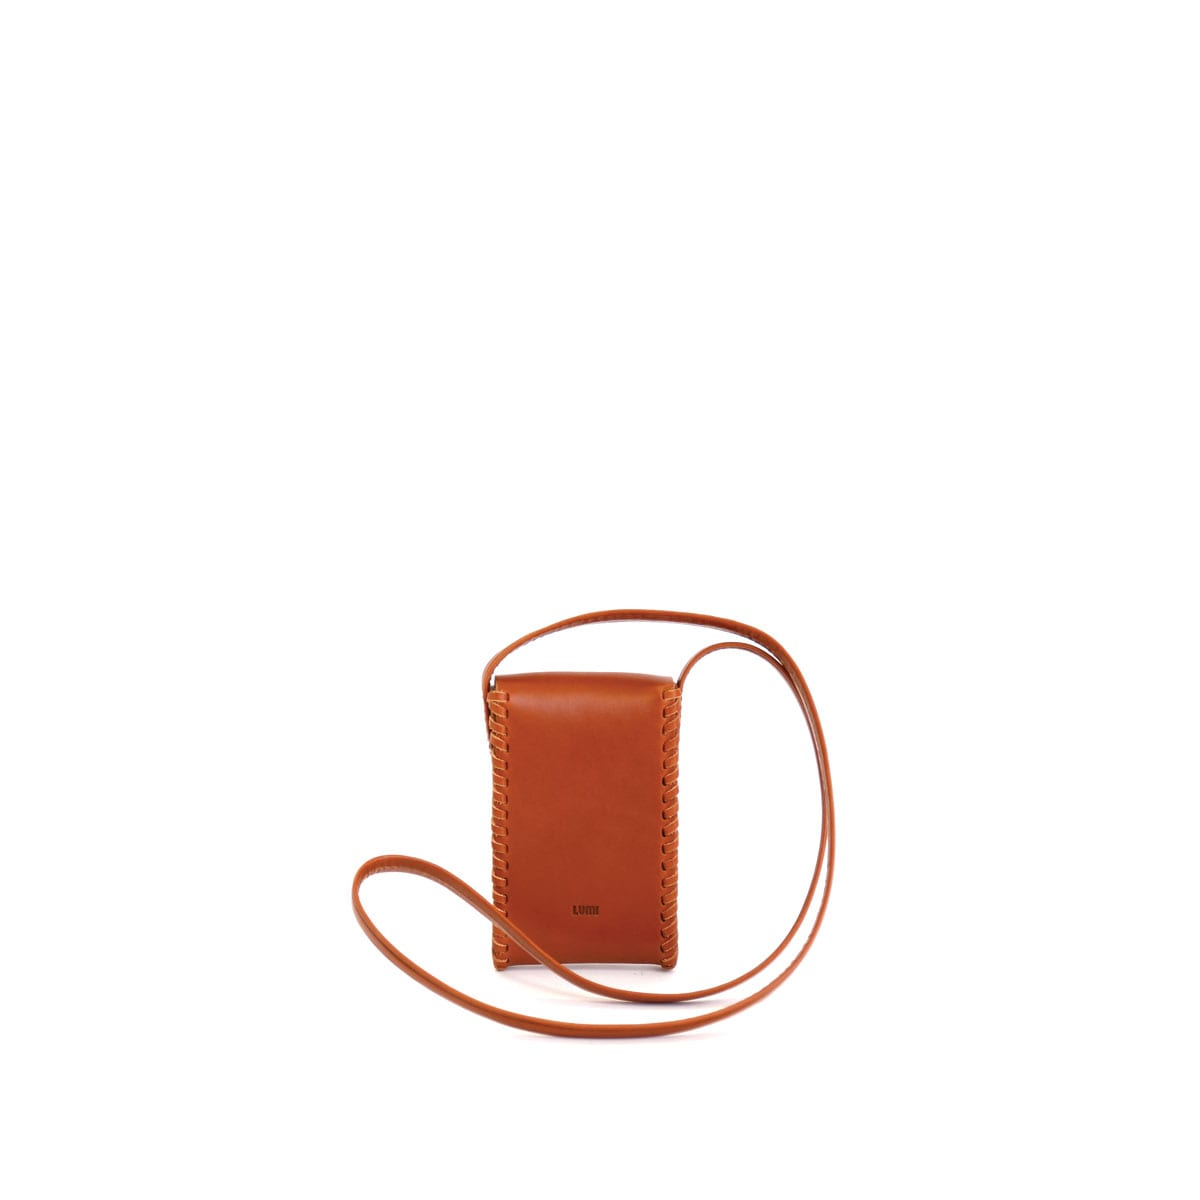 LUMI Kimmo Neck Phone Case, in cognac, is created using natural vegetable tanned cow leather. The color will naturally change over time.